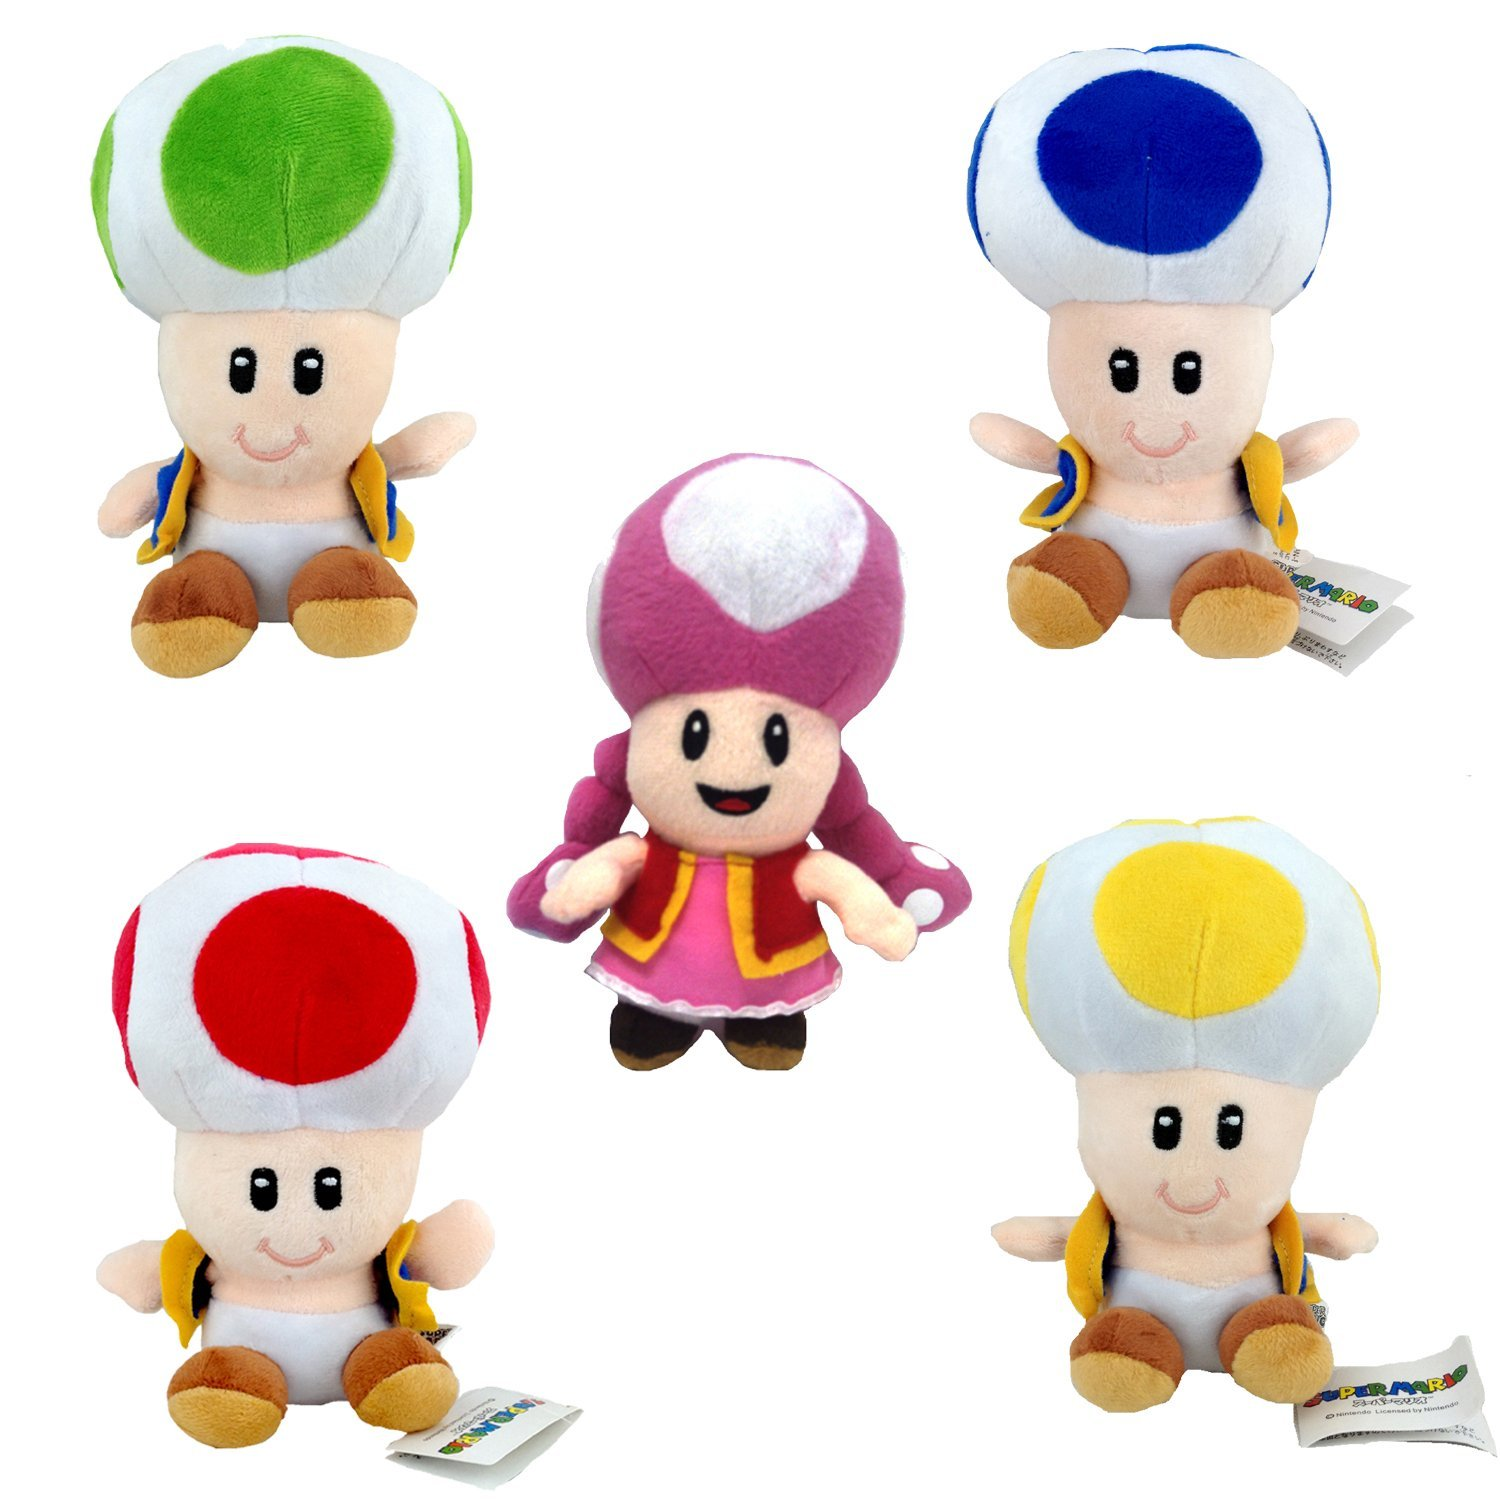 One Set of 5 PCS Toadette Yellow Blue Green Red Toad Super Mario Bros Toad Brigade Plush Soft Toy Stuffed Animal with a Free Super Mario Badge as Gift 6'' by Generic